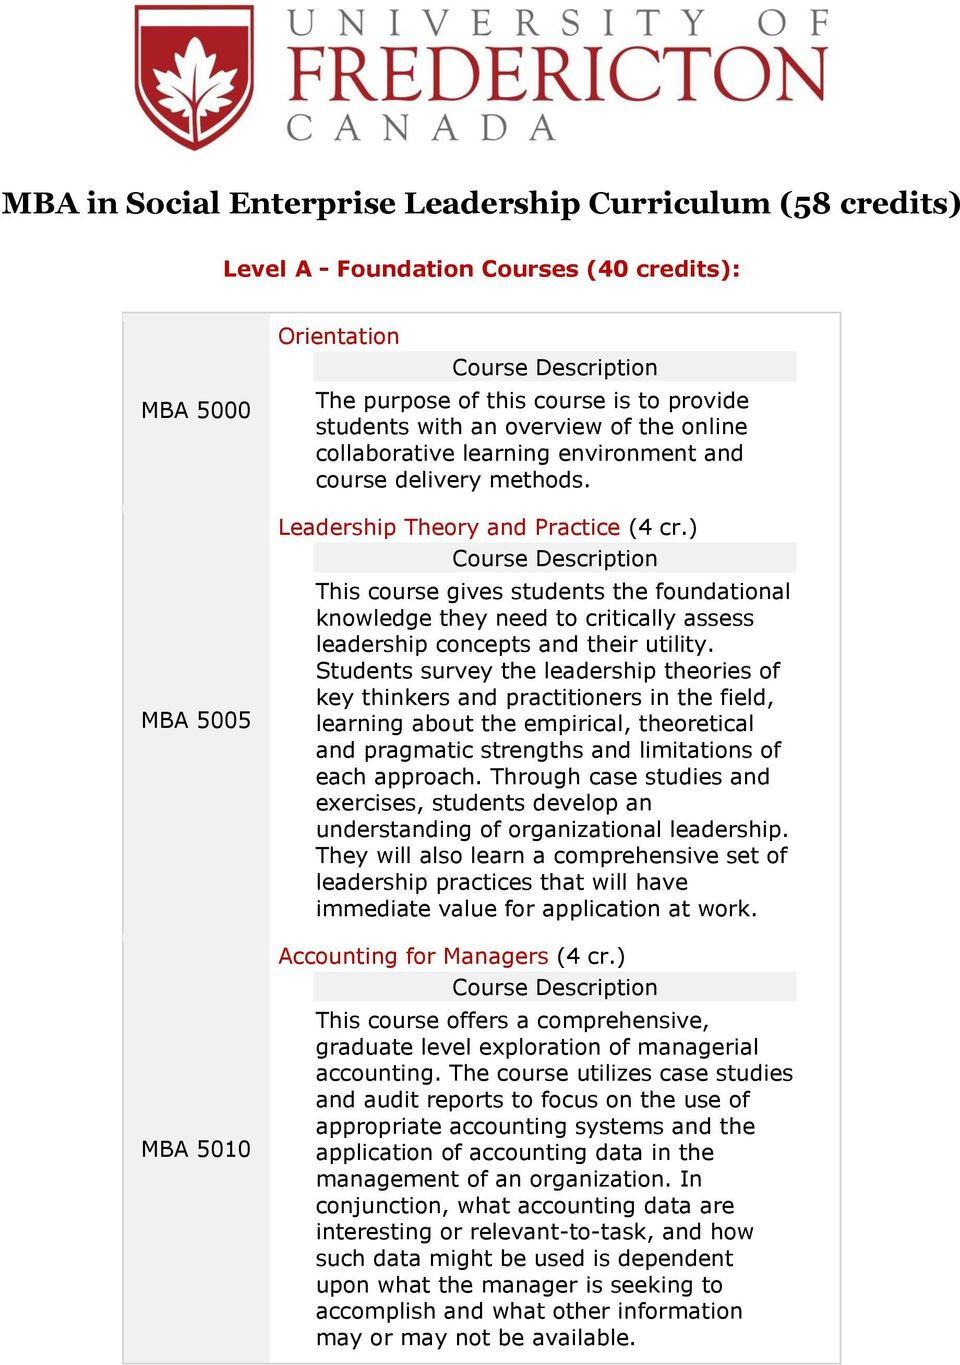 Leadership Theory and Practice This course gives students the foundational knowledge they need to critically assess leadership concepts and their utility.